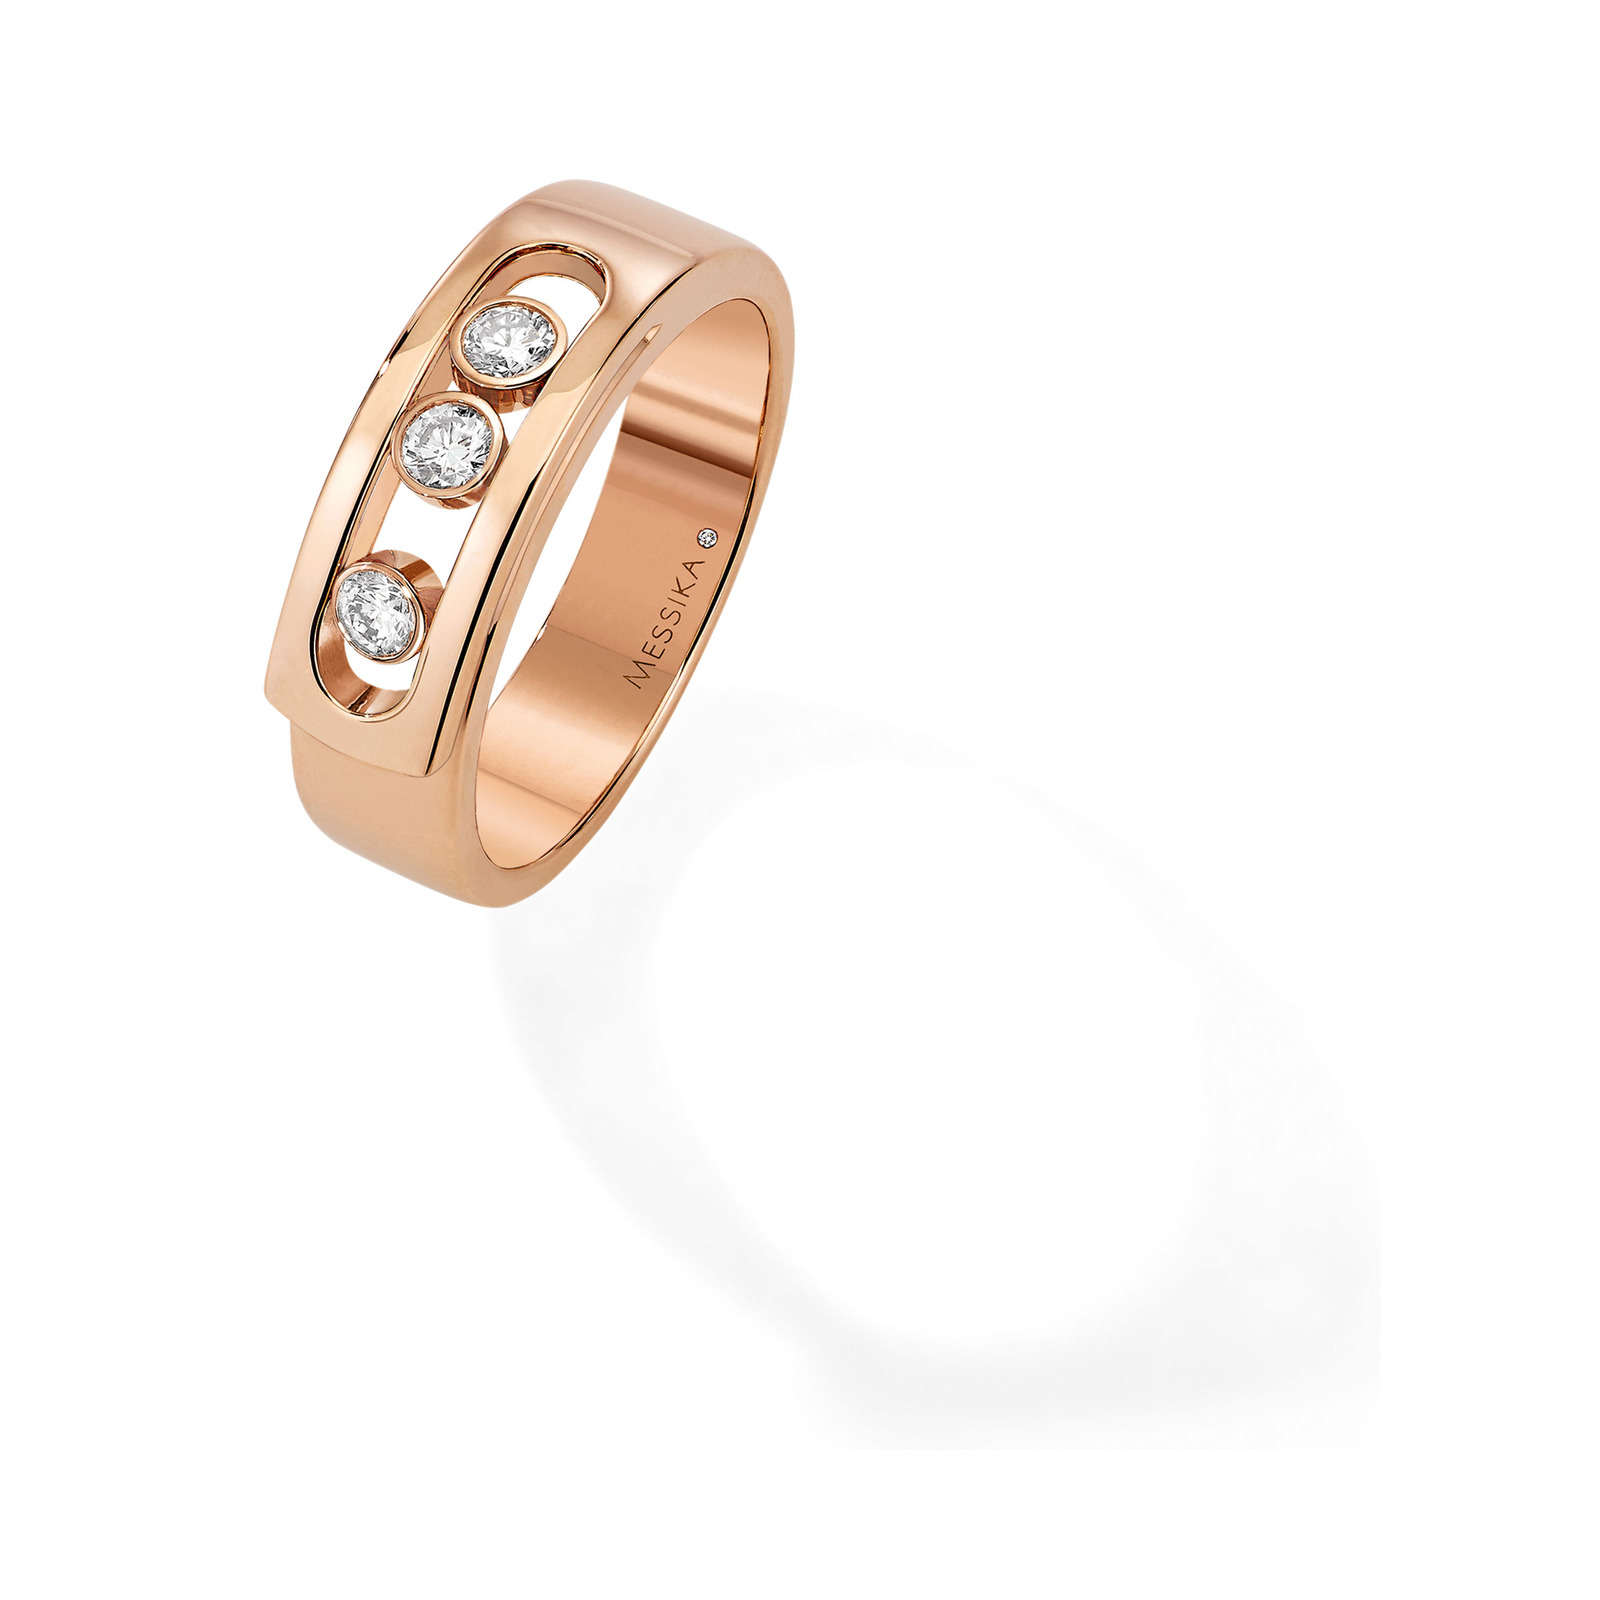 Messika 18ct Rose Gold Move Diamond Ring - Ring Size J